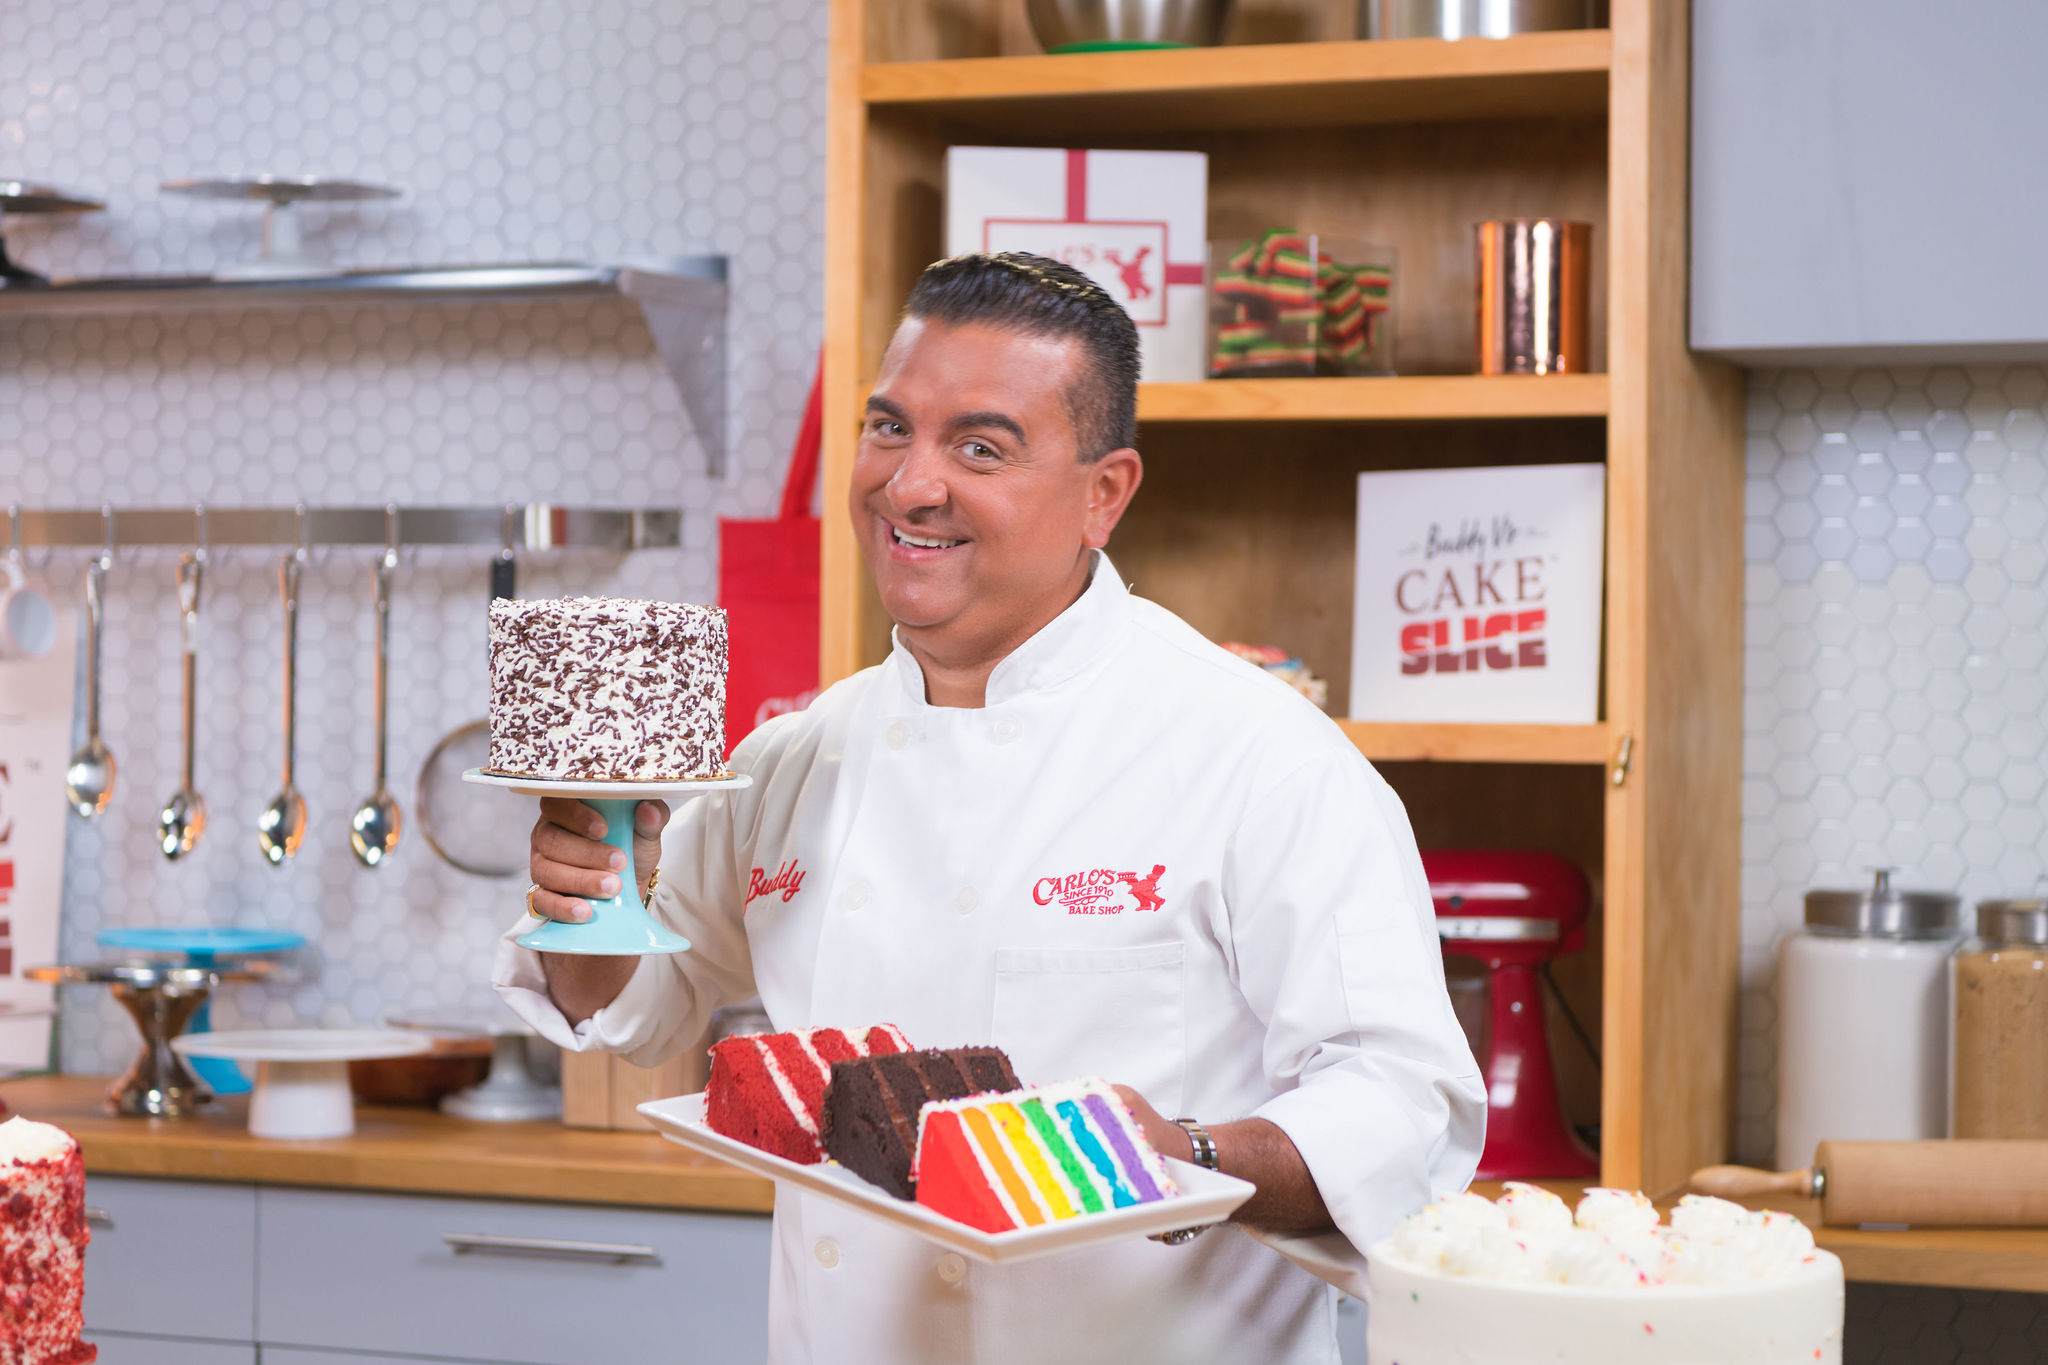 A man in a white chef's coat holds slices of red velvet, chocolate, and rainbow cake.